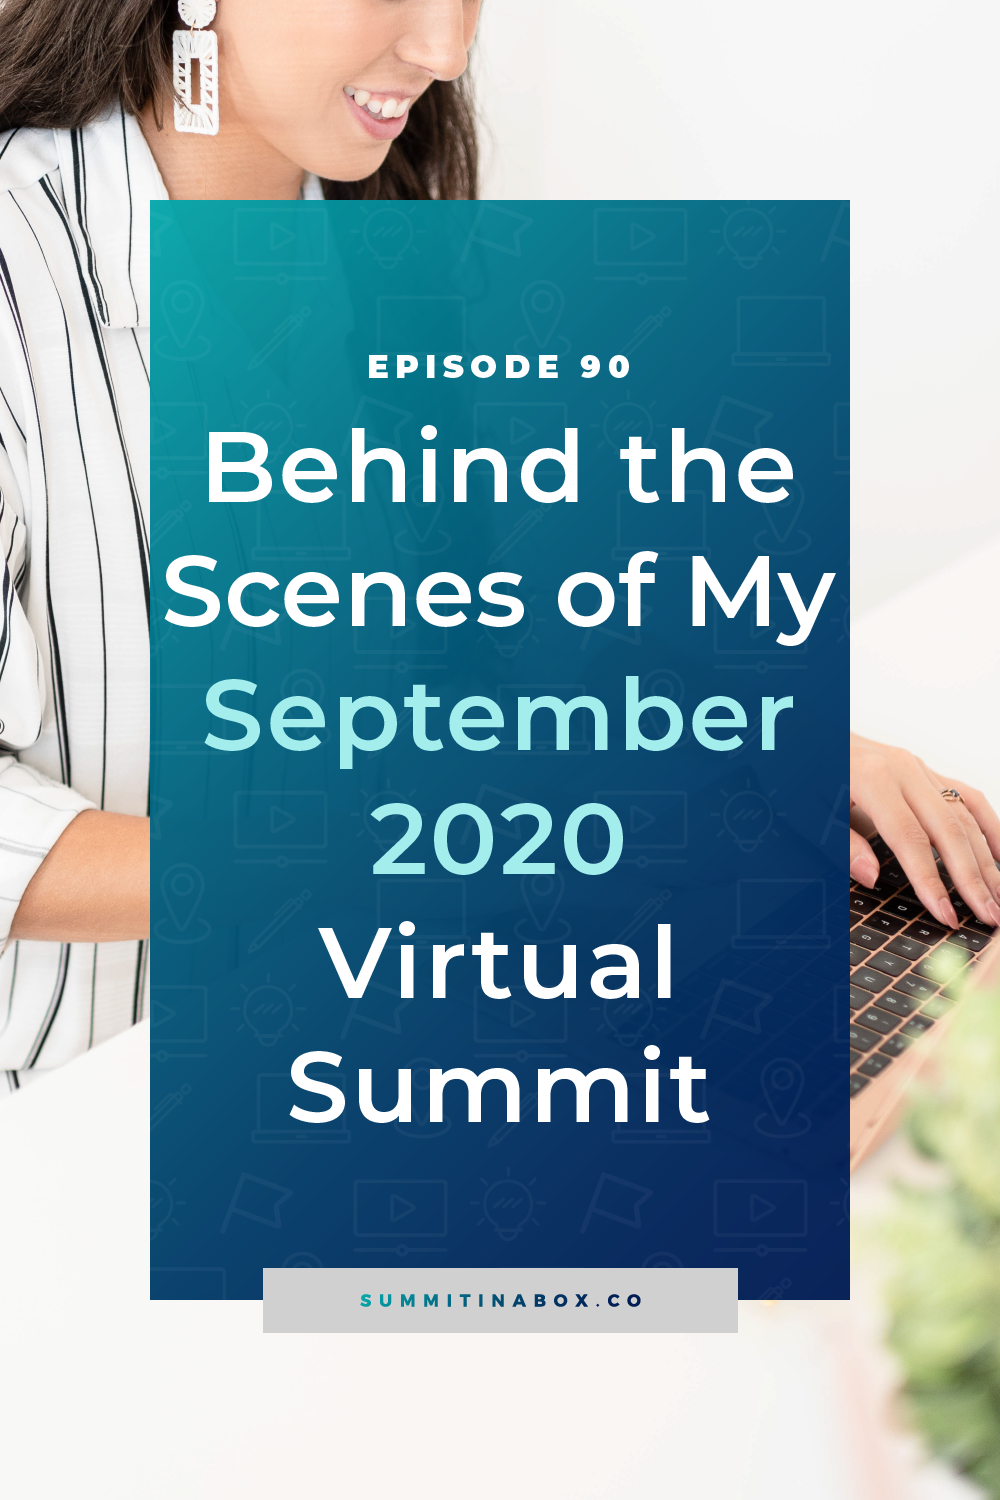 Get a look behind the scenes of my latest virtual summit to see how it was set up, exact numbers, and what I'll keep the same or change next time.